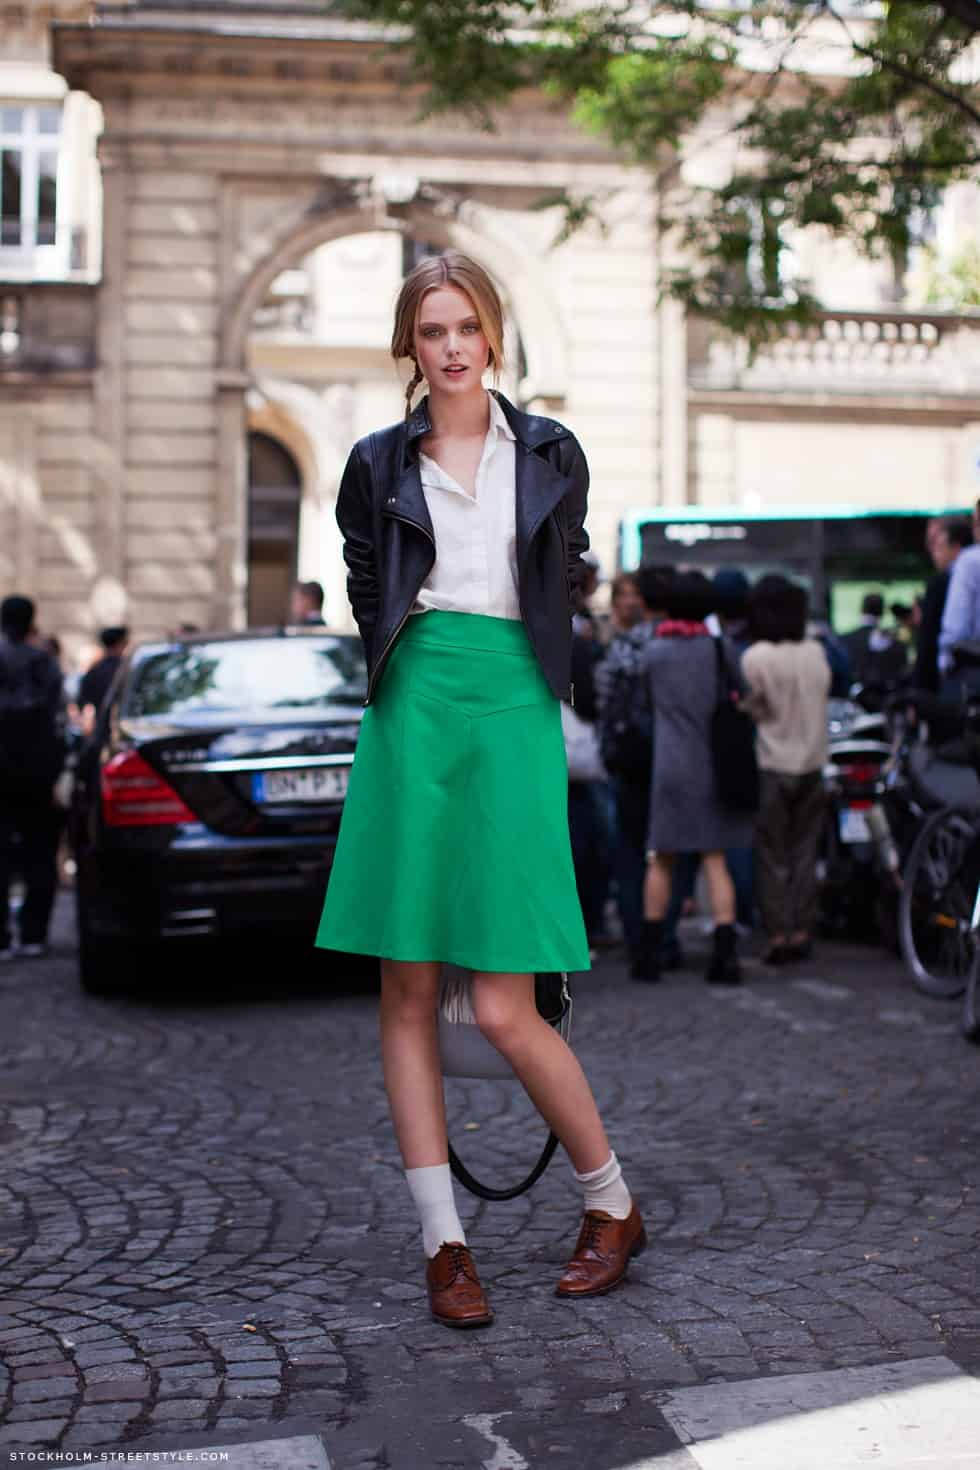 street-style-green-outftis-spring-looks-20